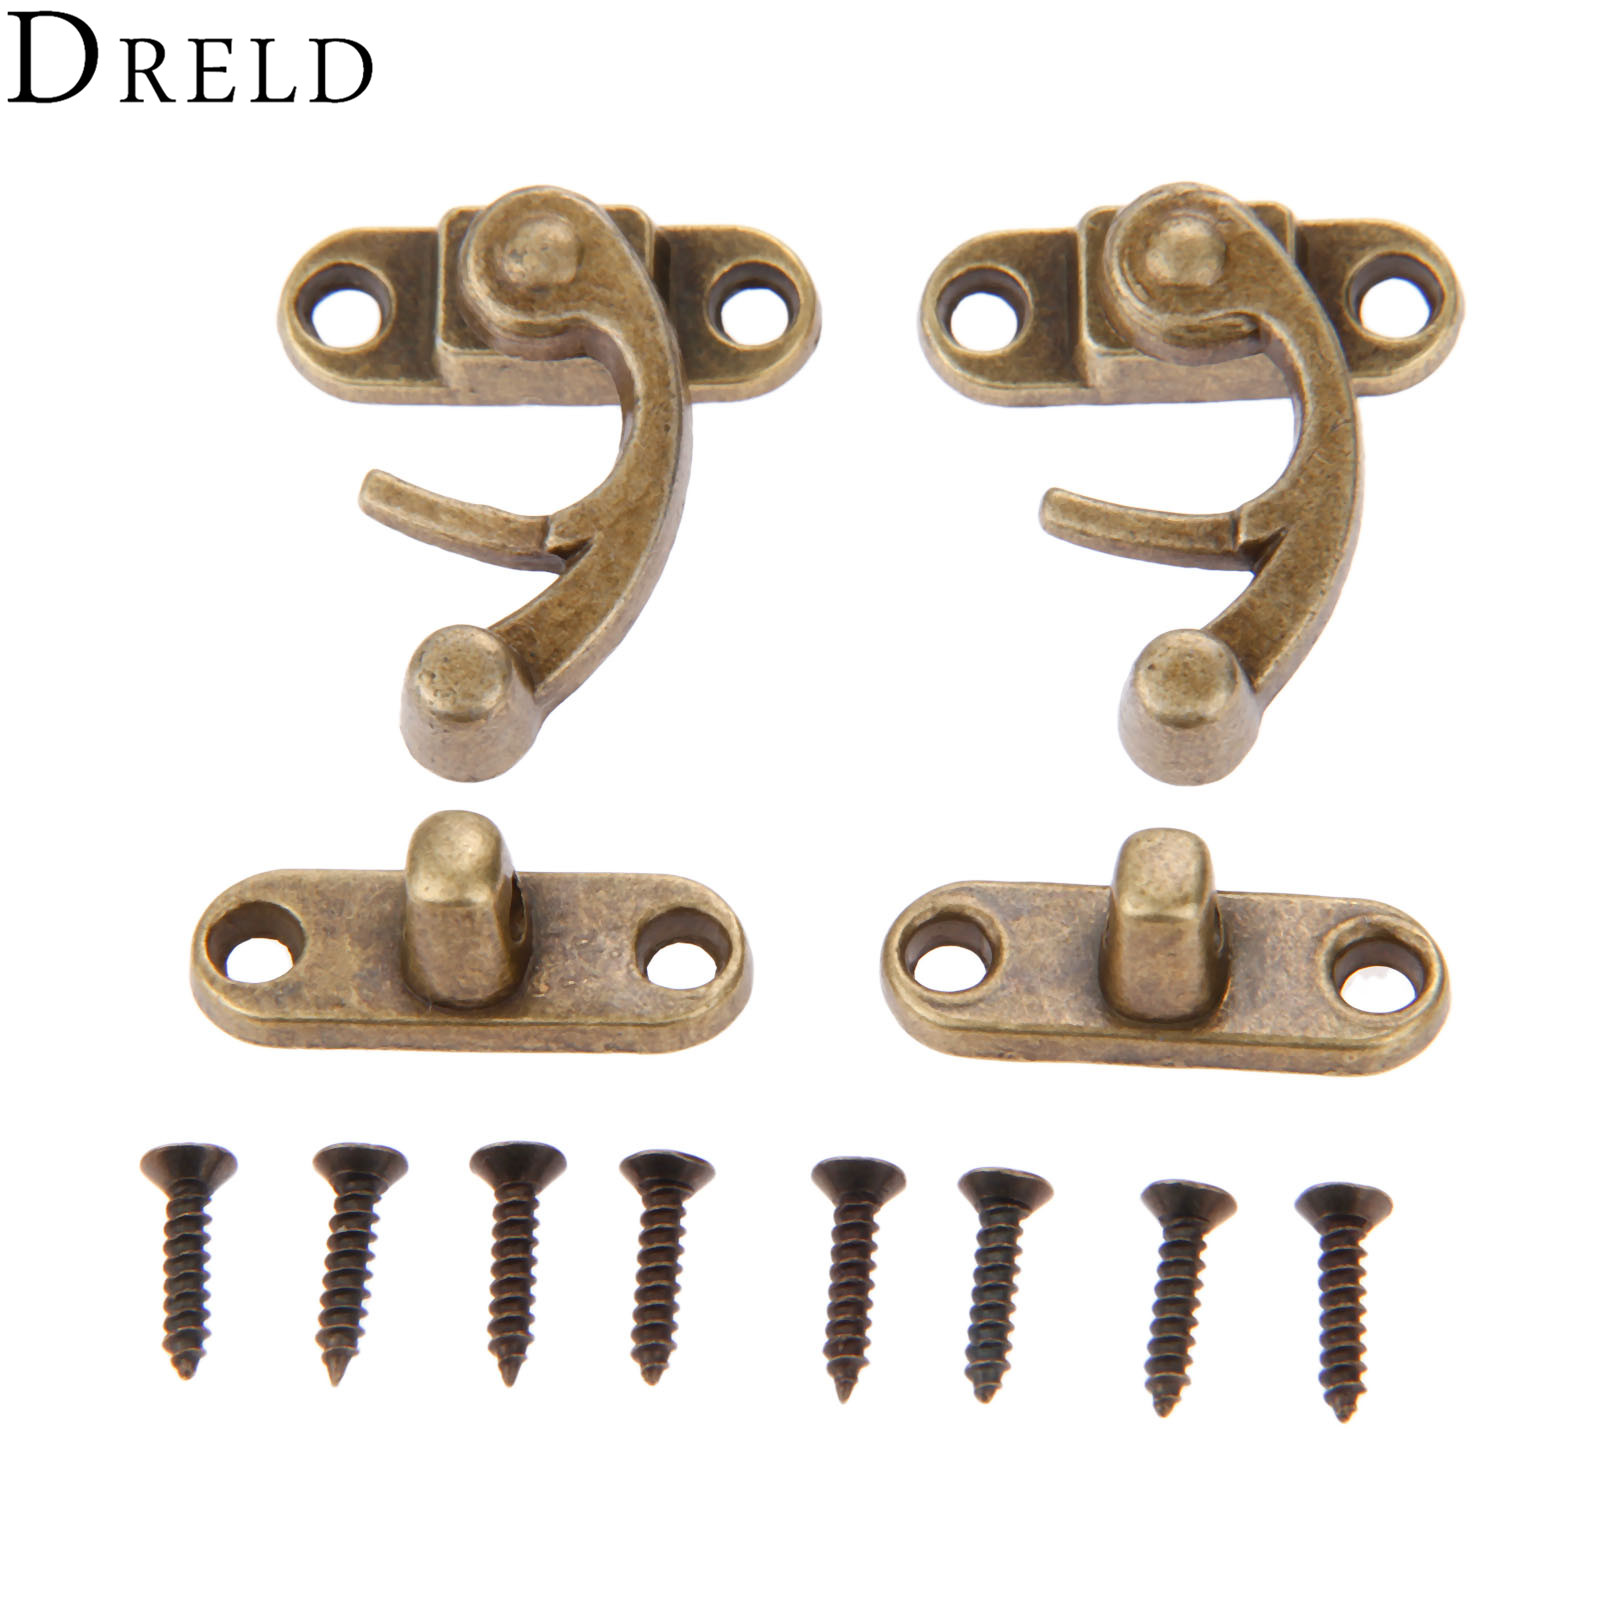 DRELD 2Pc Antique Decorative Furniture Hardware Box Hasps Leather Craft Bag Jewelry Gift Wine Wooden Box Hasp Latch Hook 29*33MMDRELD 2Pc Antique Decorative Furniture Hardware Box Hasps Leather Craft Bag Jewelry Gift Wine Wooden Box Hasp Latch Hook 29*33MM